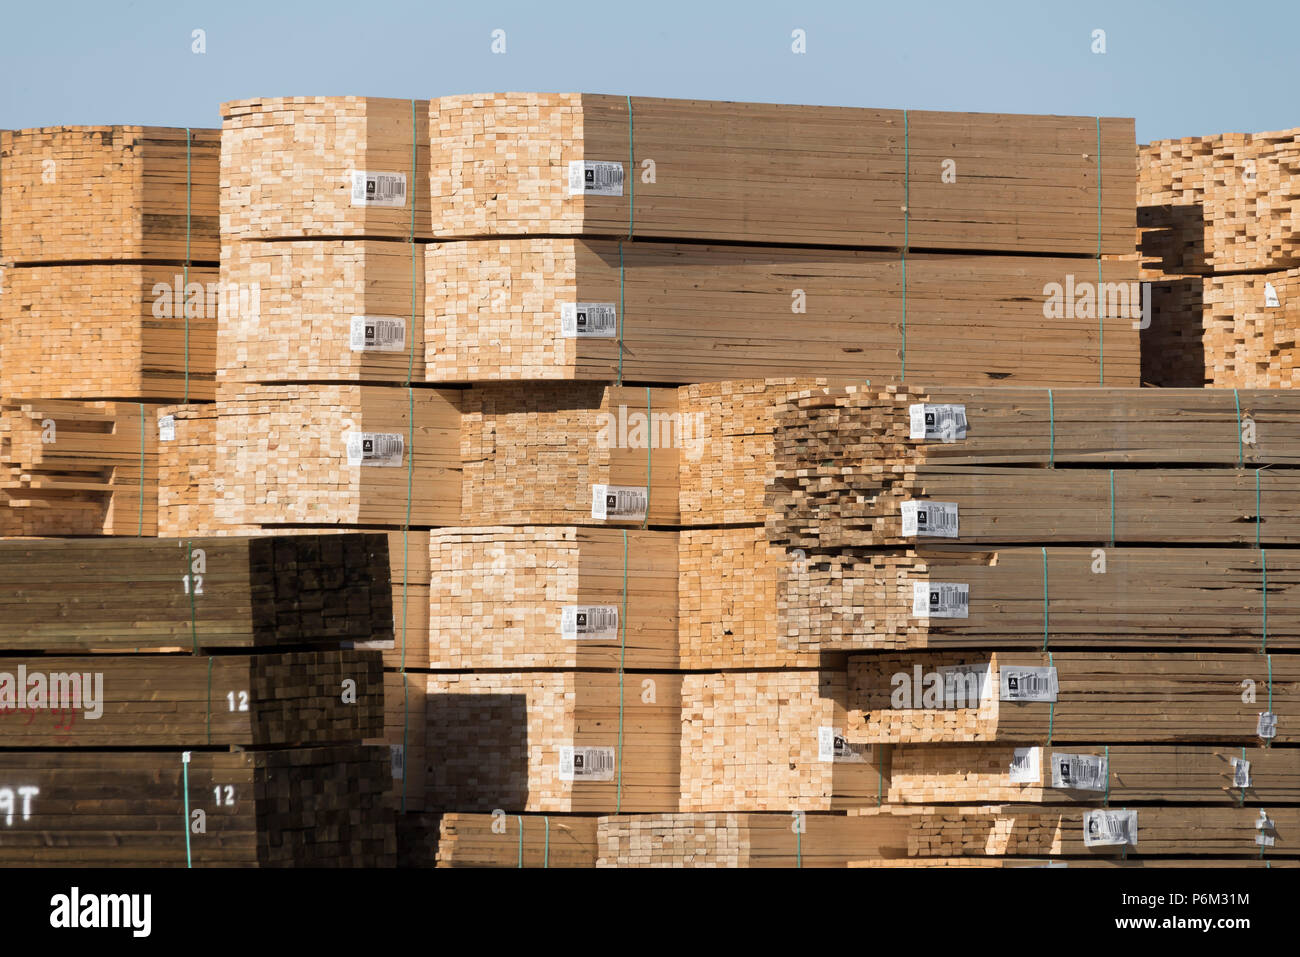 Canadian softwood lumber bundled and stacked ready for export to world markets Stock Photo